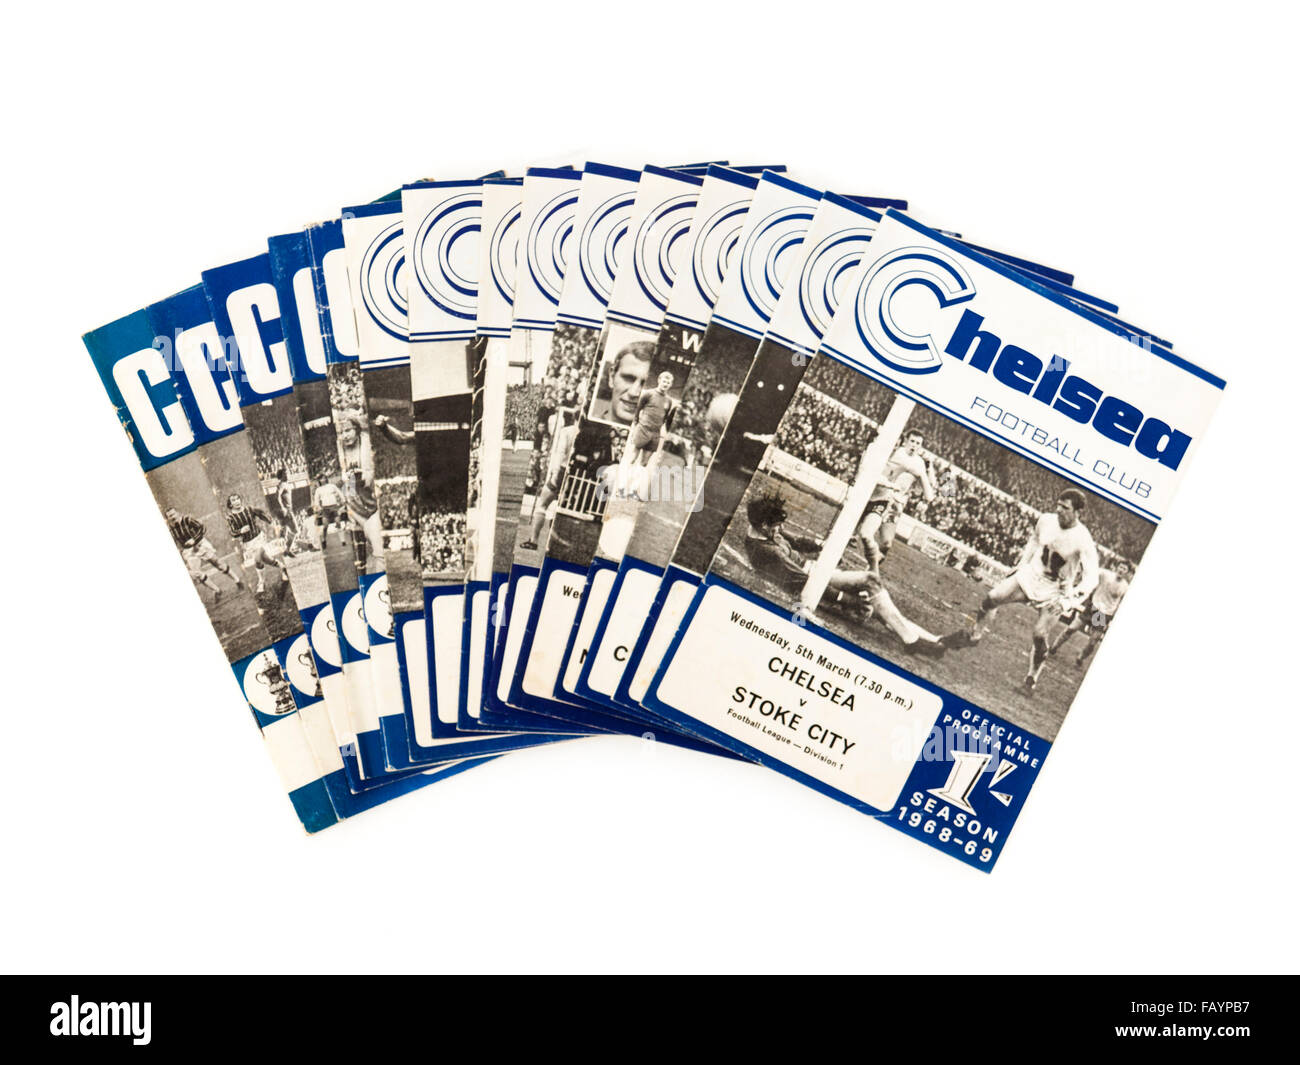 Collection of vintage 1960's Chelsea Football Club programmes (1968-1969 season) with the Chelsea v Stoke City - Stock Image